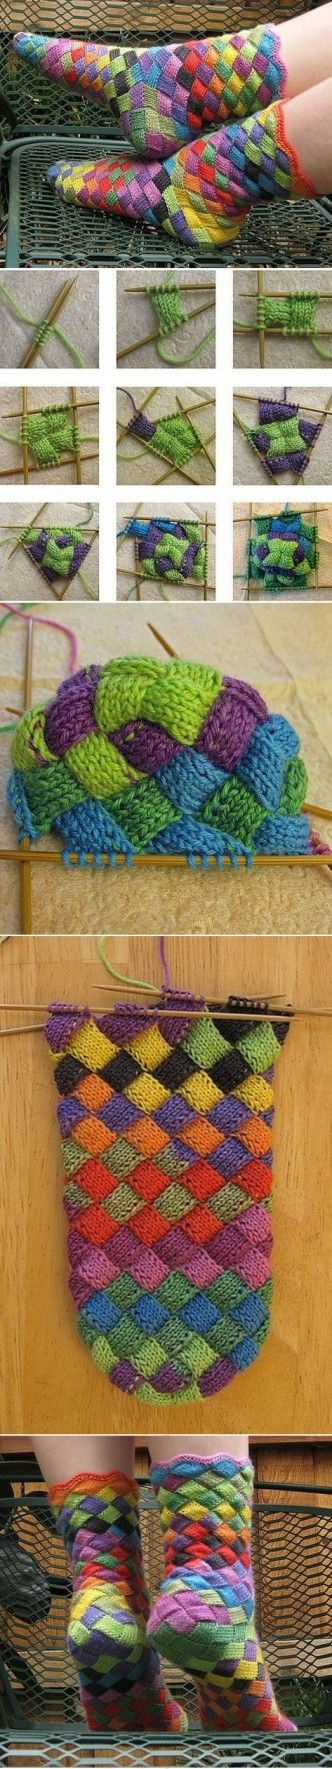 How cute are these socks? I want to knit a million pairs!